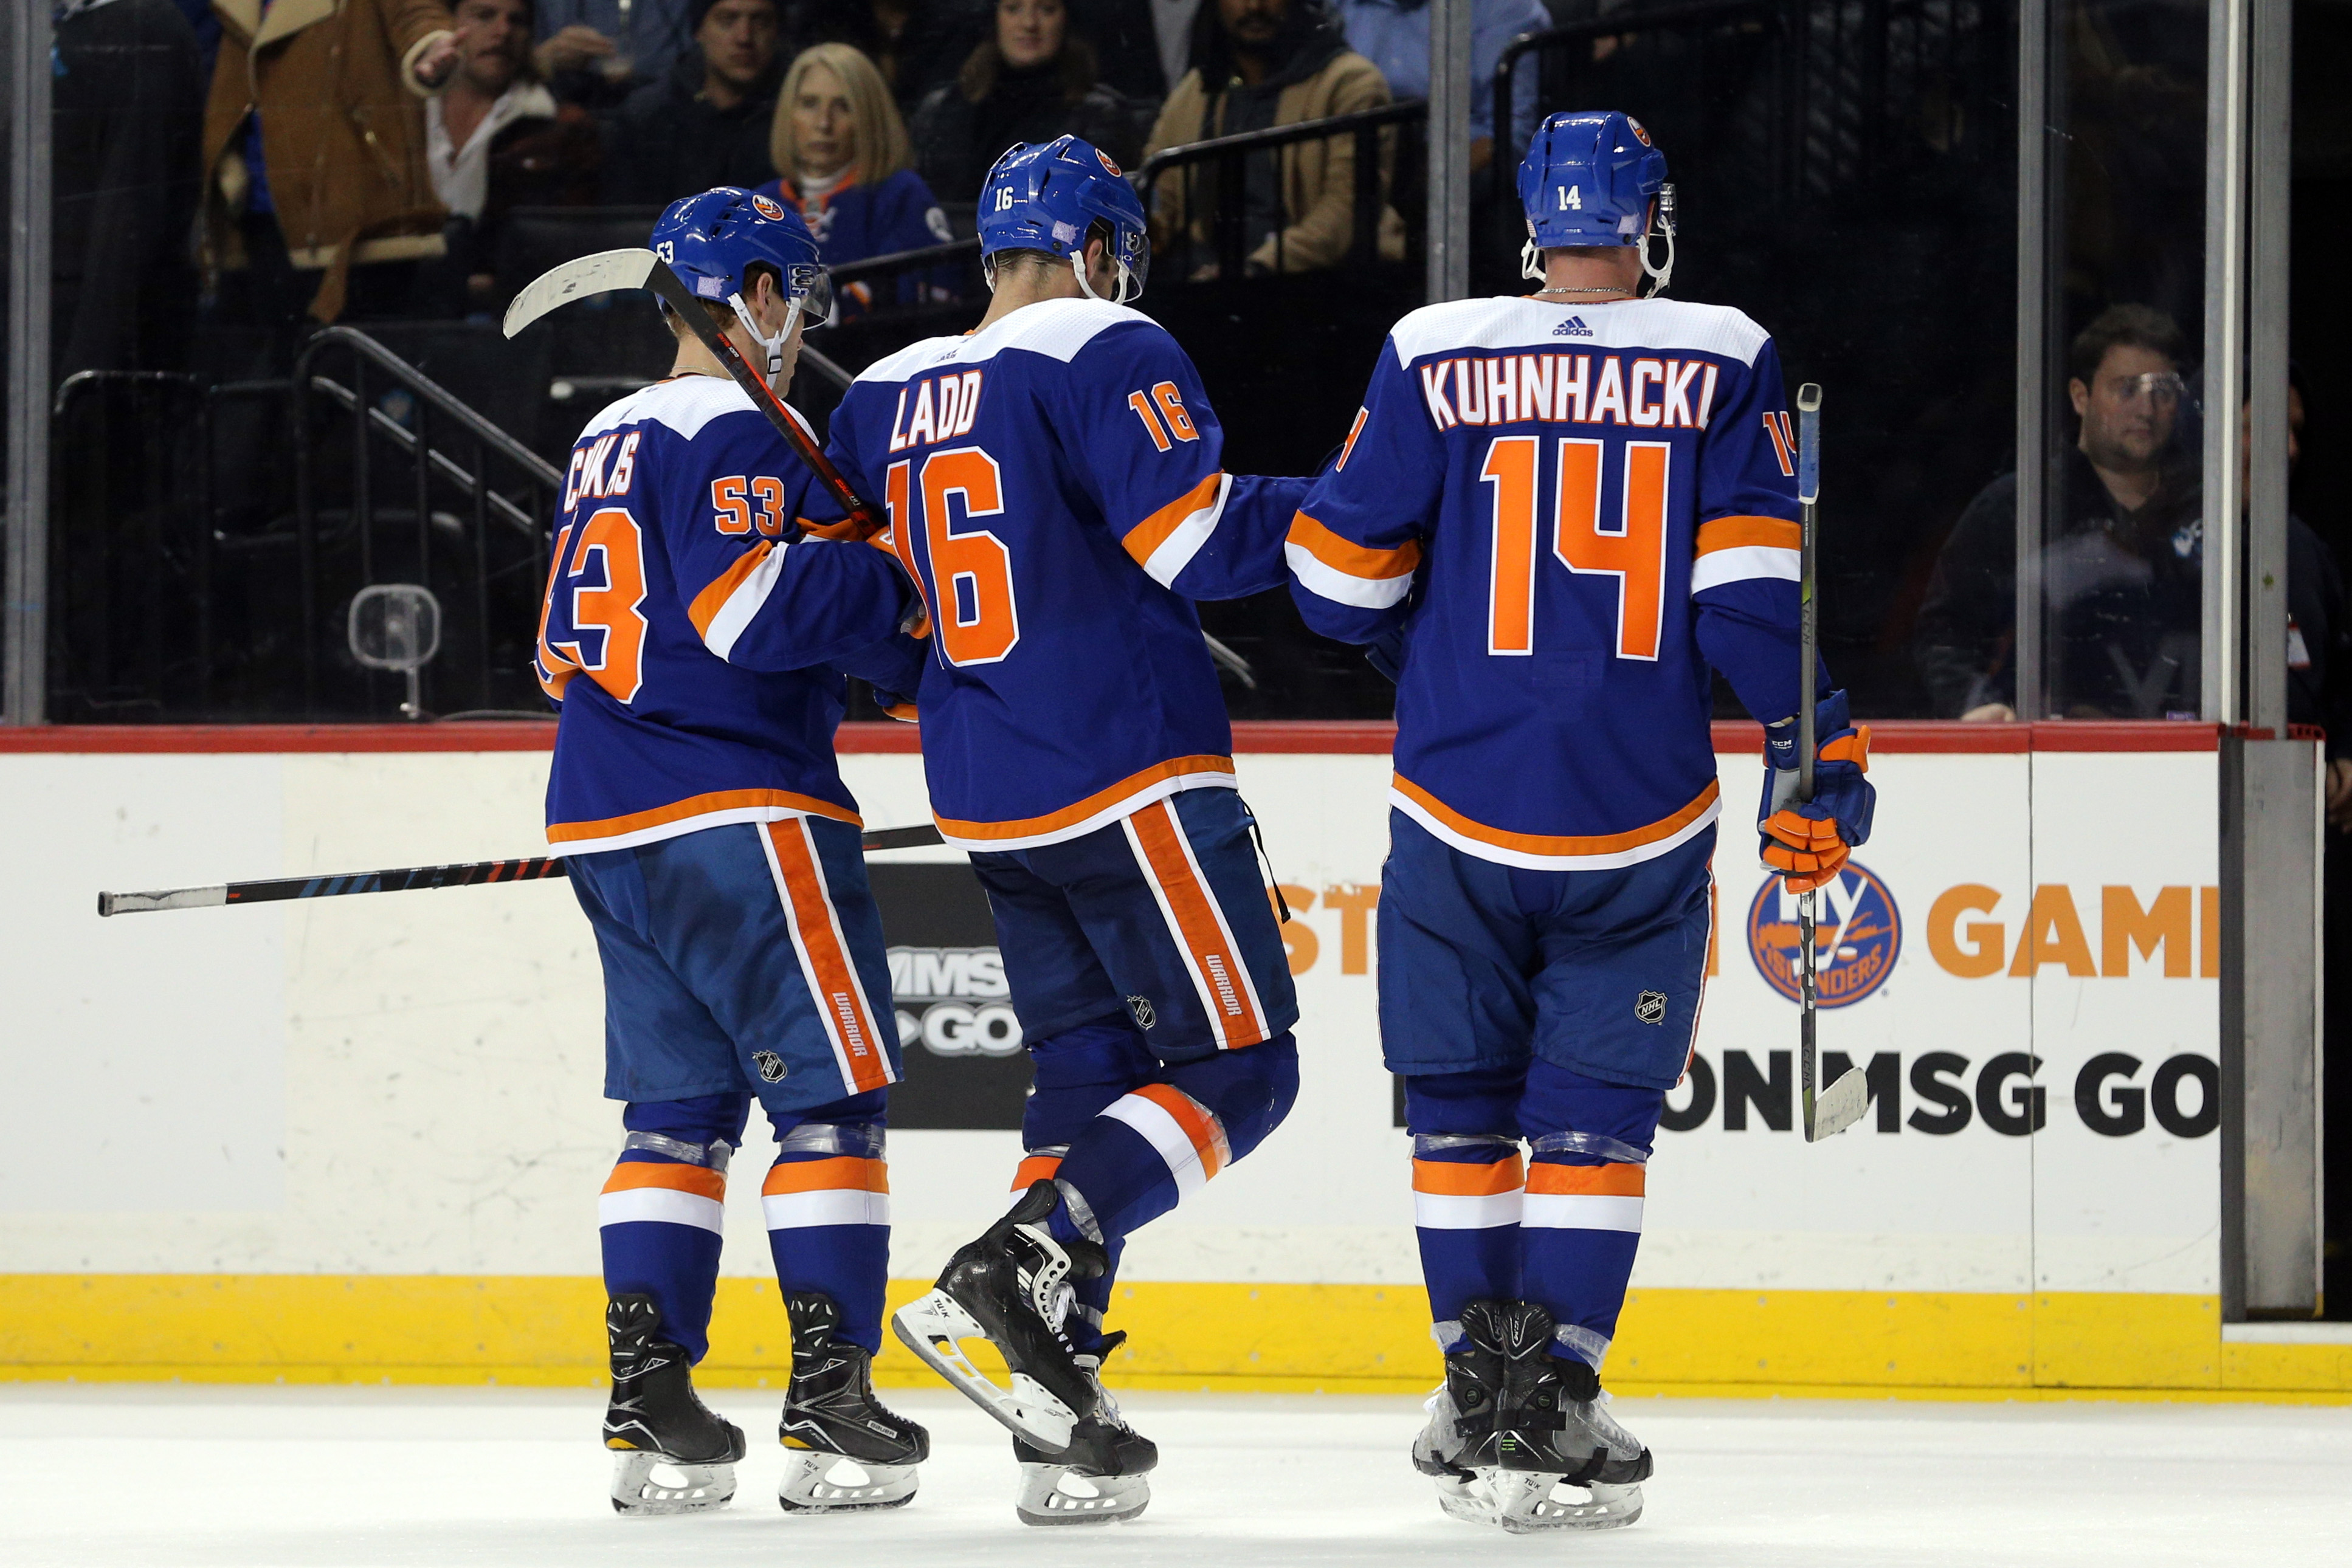 Watch: Islanders' Tom Kuhnhackl Scores From His Back | The Sports Daily